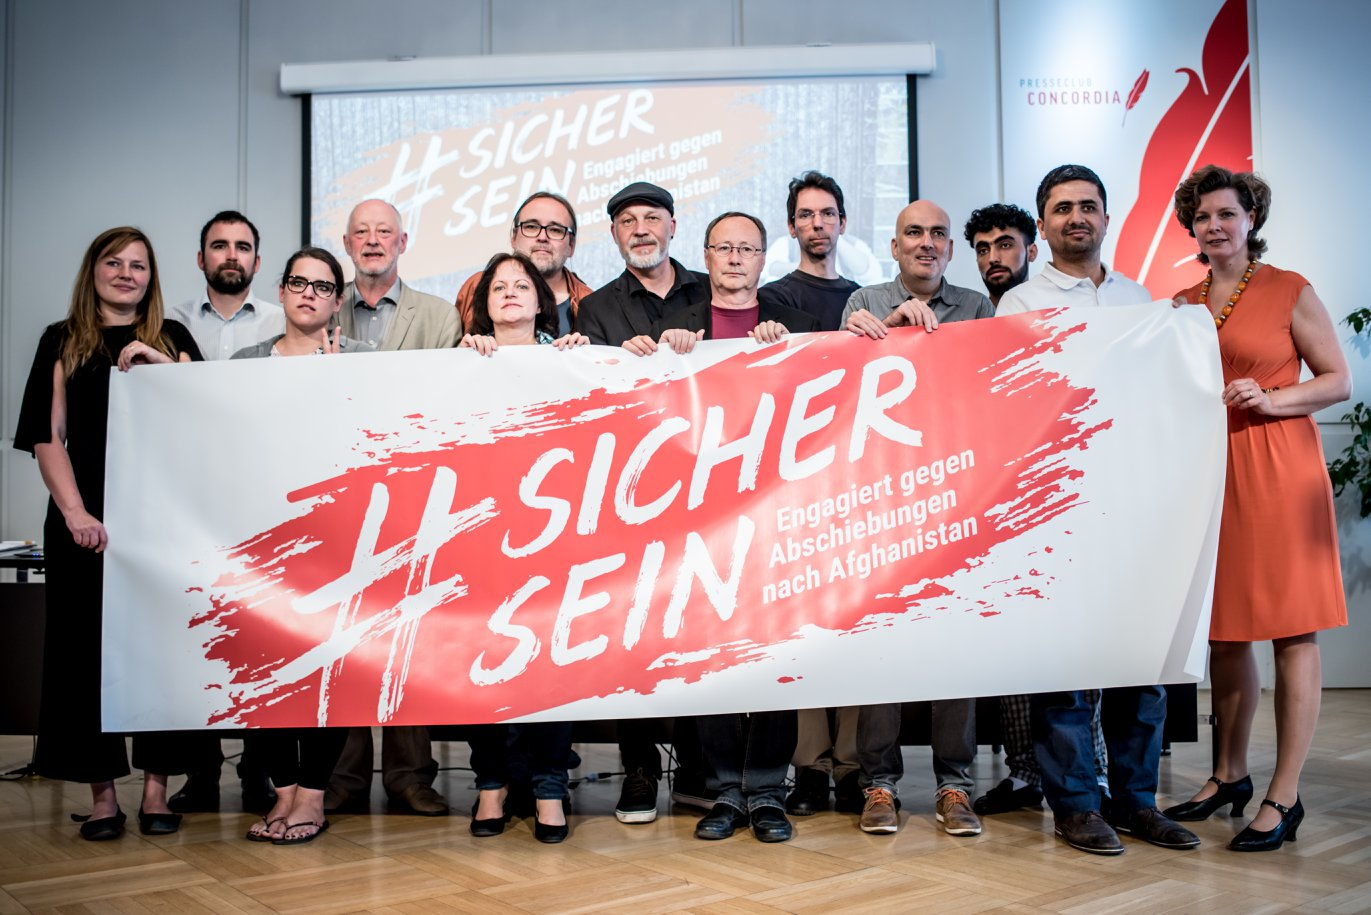 https://www.sichersein.at/wp-content/uploads/2018/05/Pressekonferenz-Facebook-2.jpg